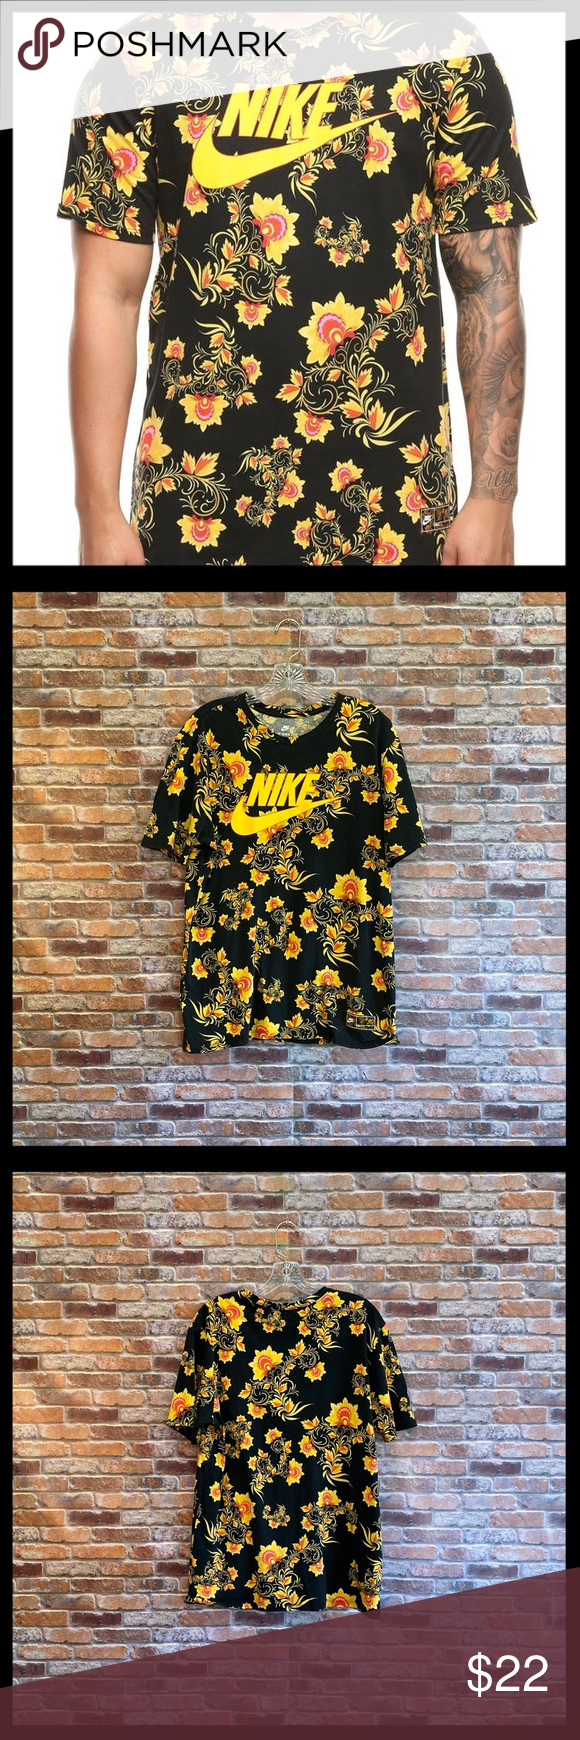 Nike Floral Tee Floral Tee Tees Clothes Design